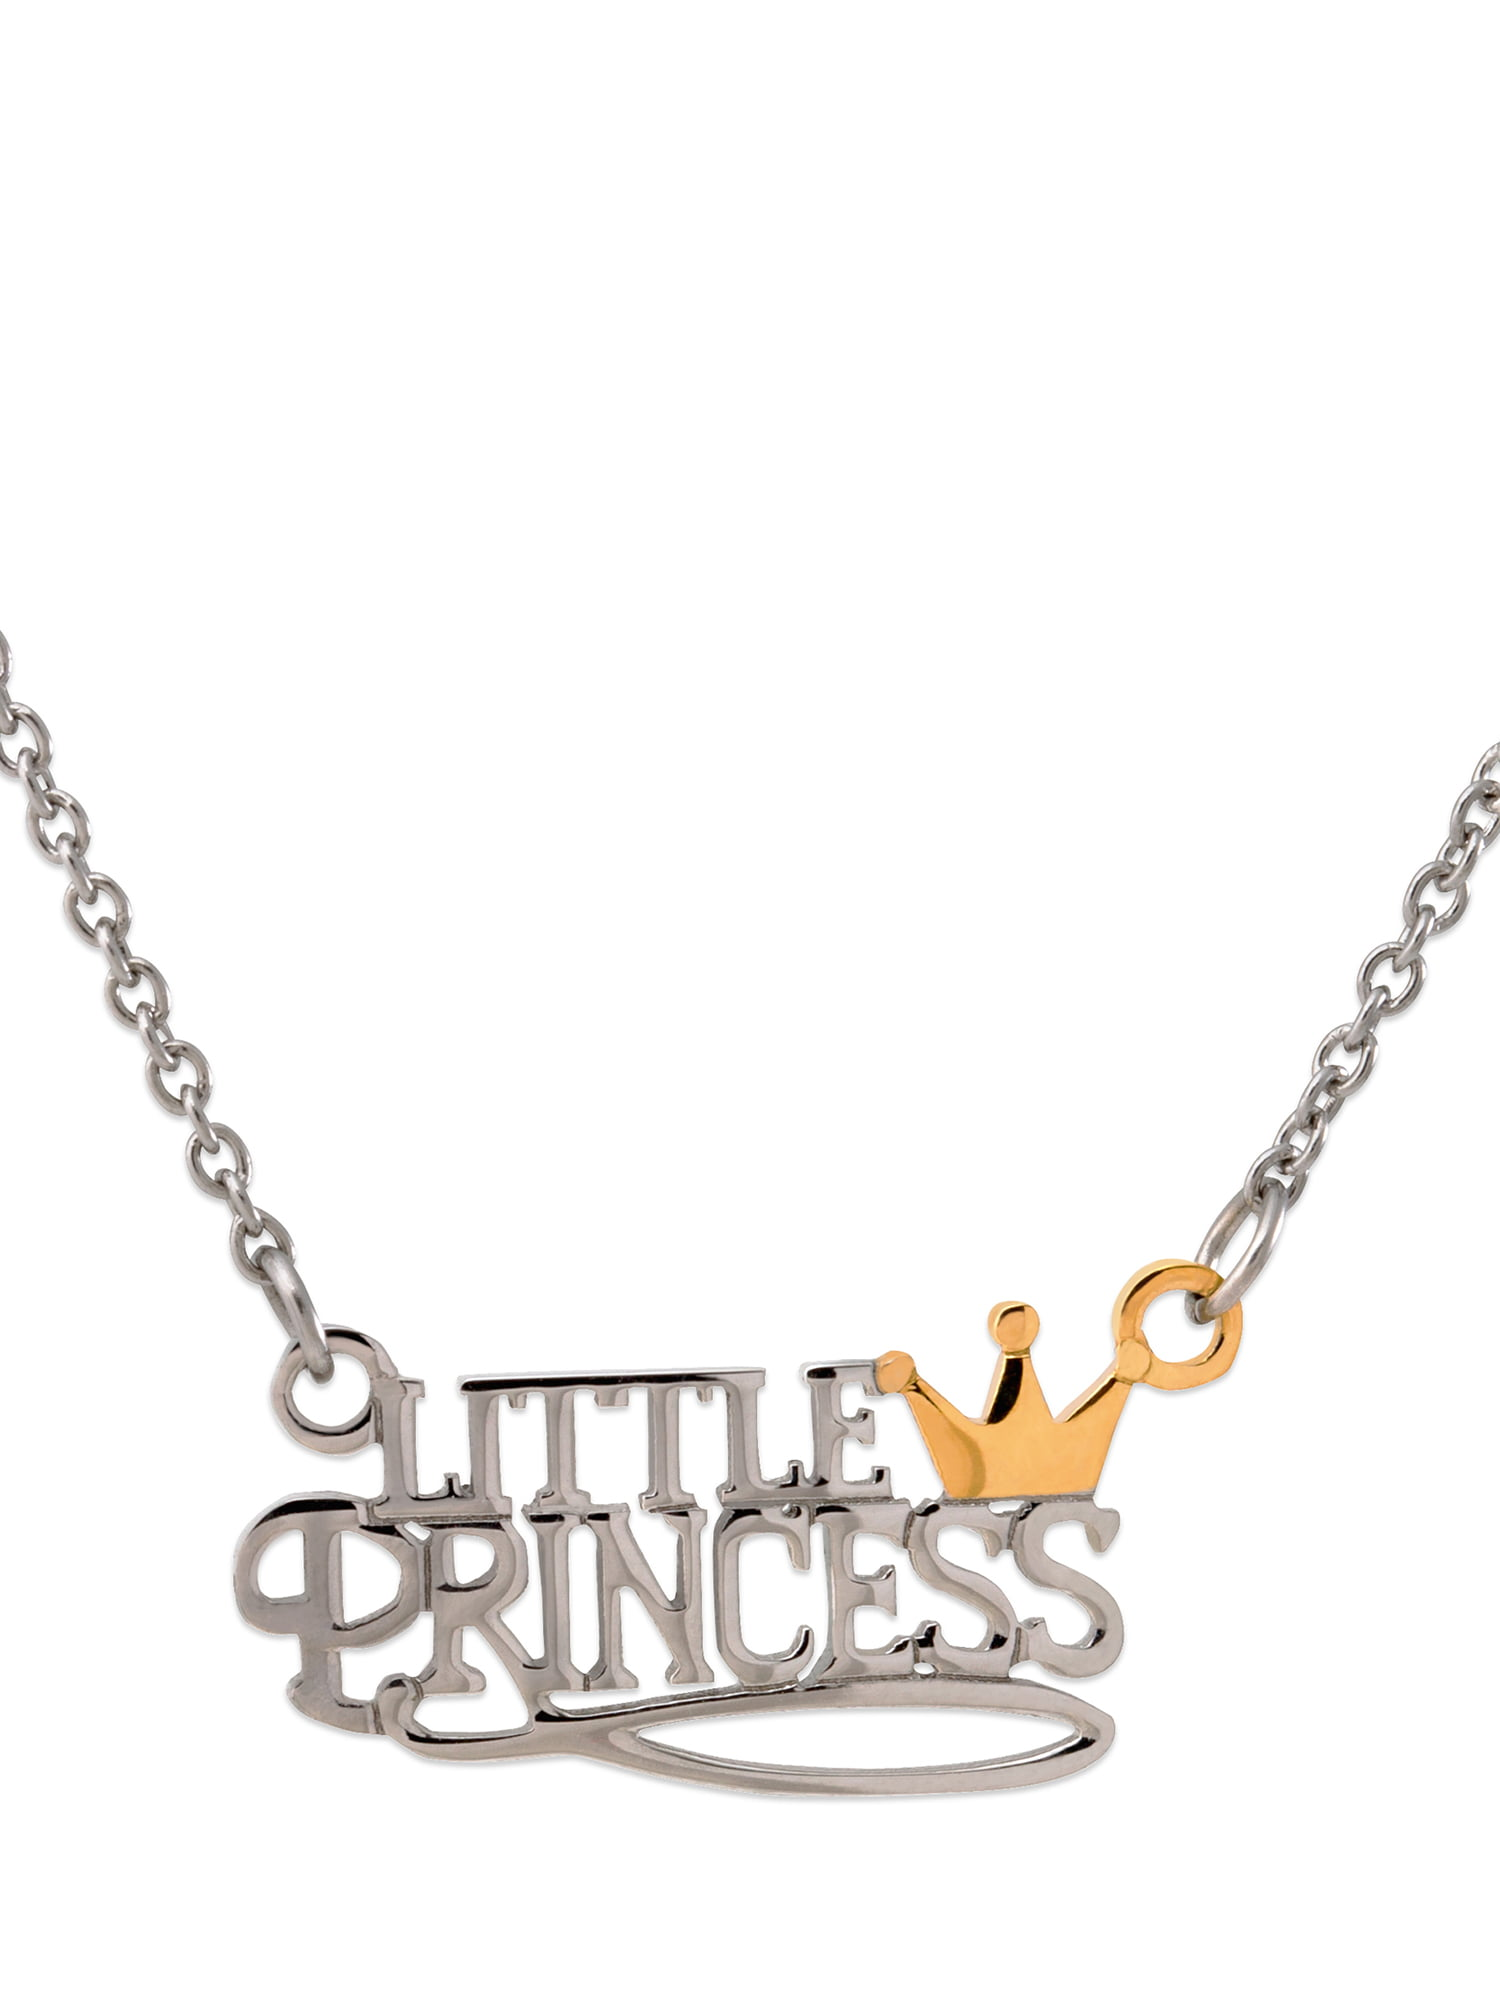 s p princess qlt spin prod disney pendant gold heart girl hei necklace wid